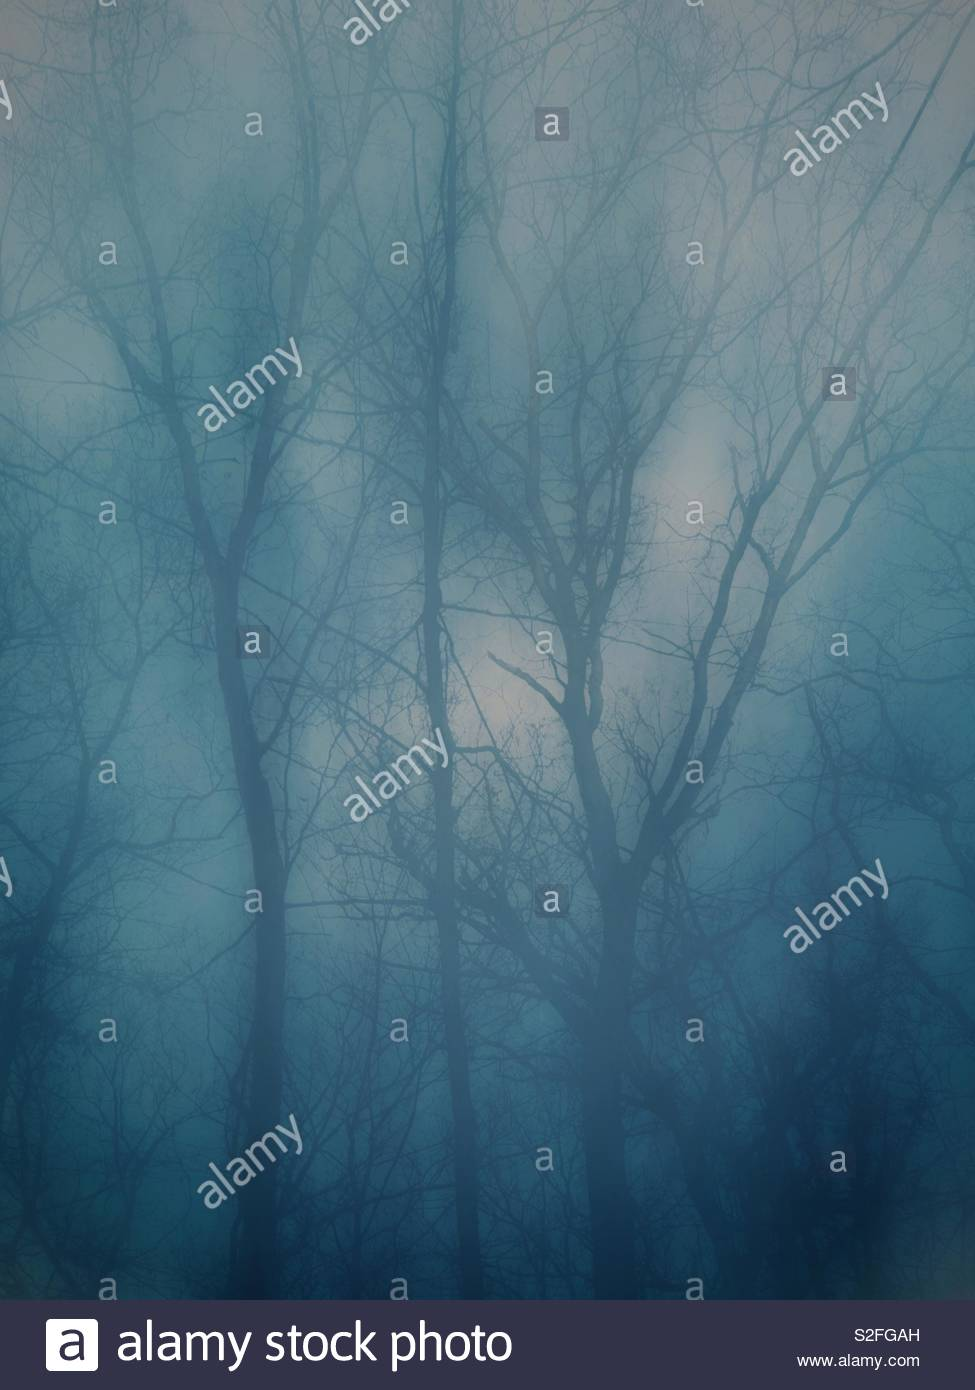 Foggy forest on a winter day - Stock Image